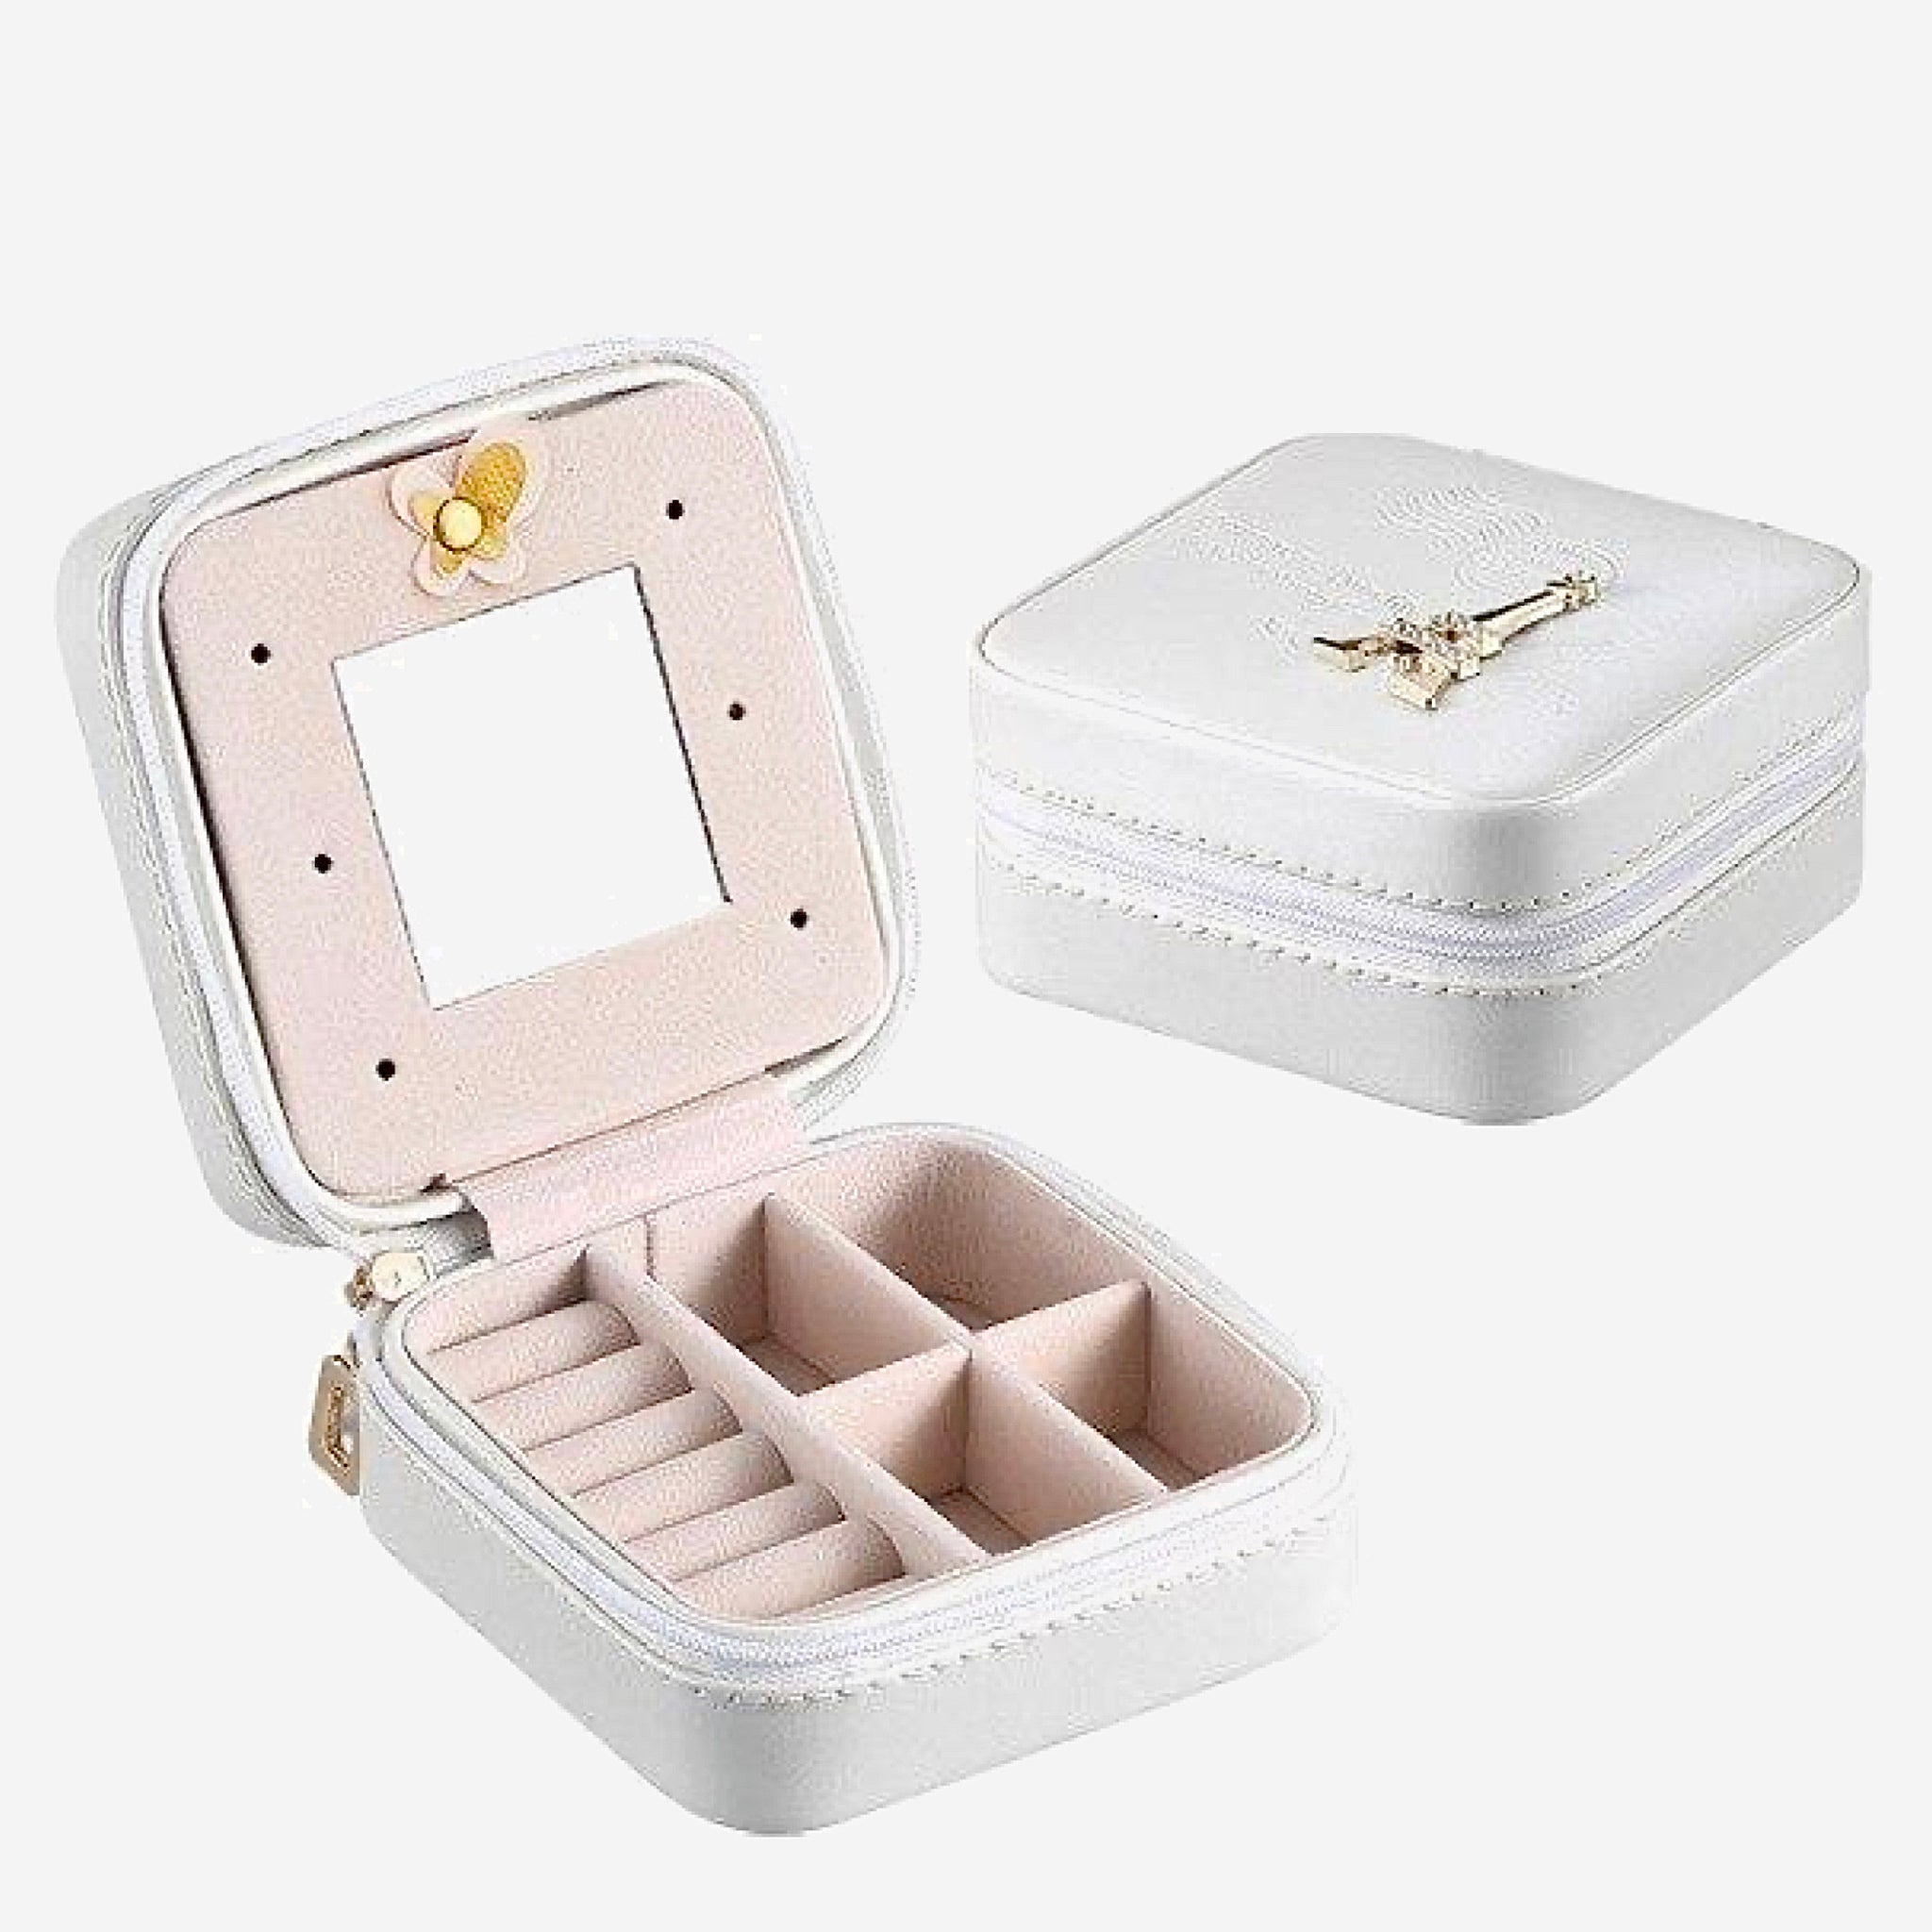 Leather Jewelry Box Travel earring boxes Holder Portable Storage Zip Organizer Case Trend White